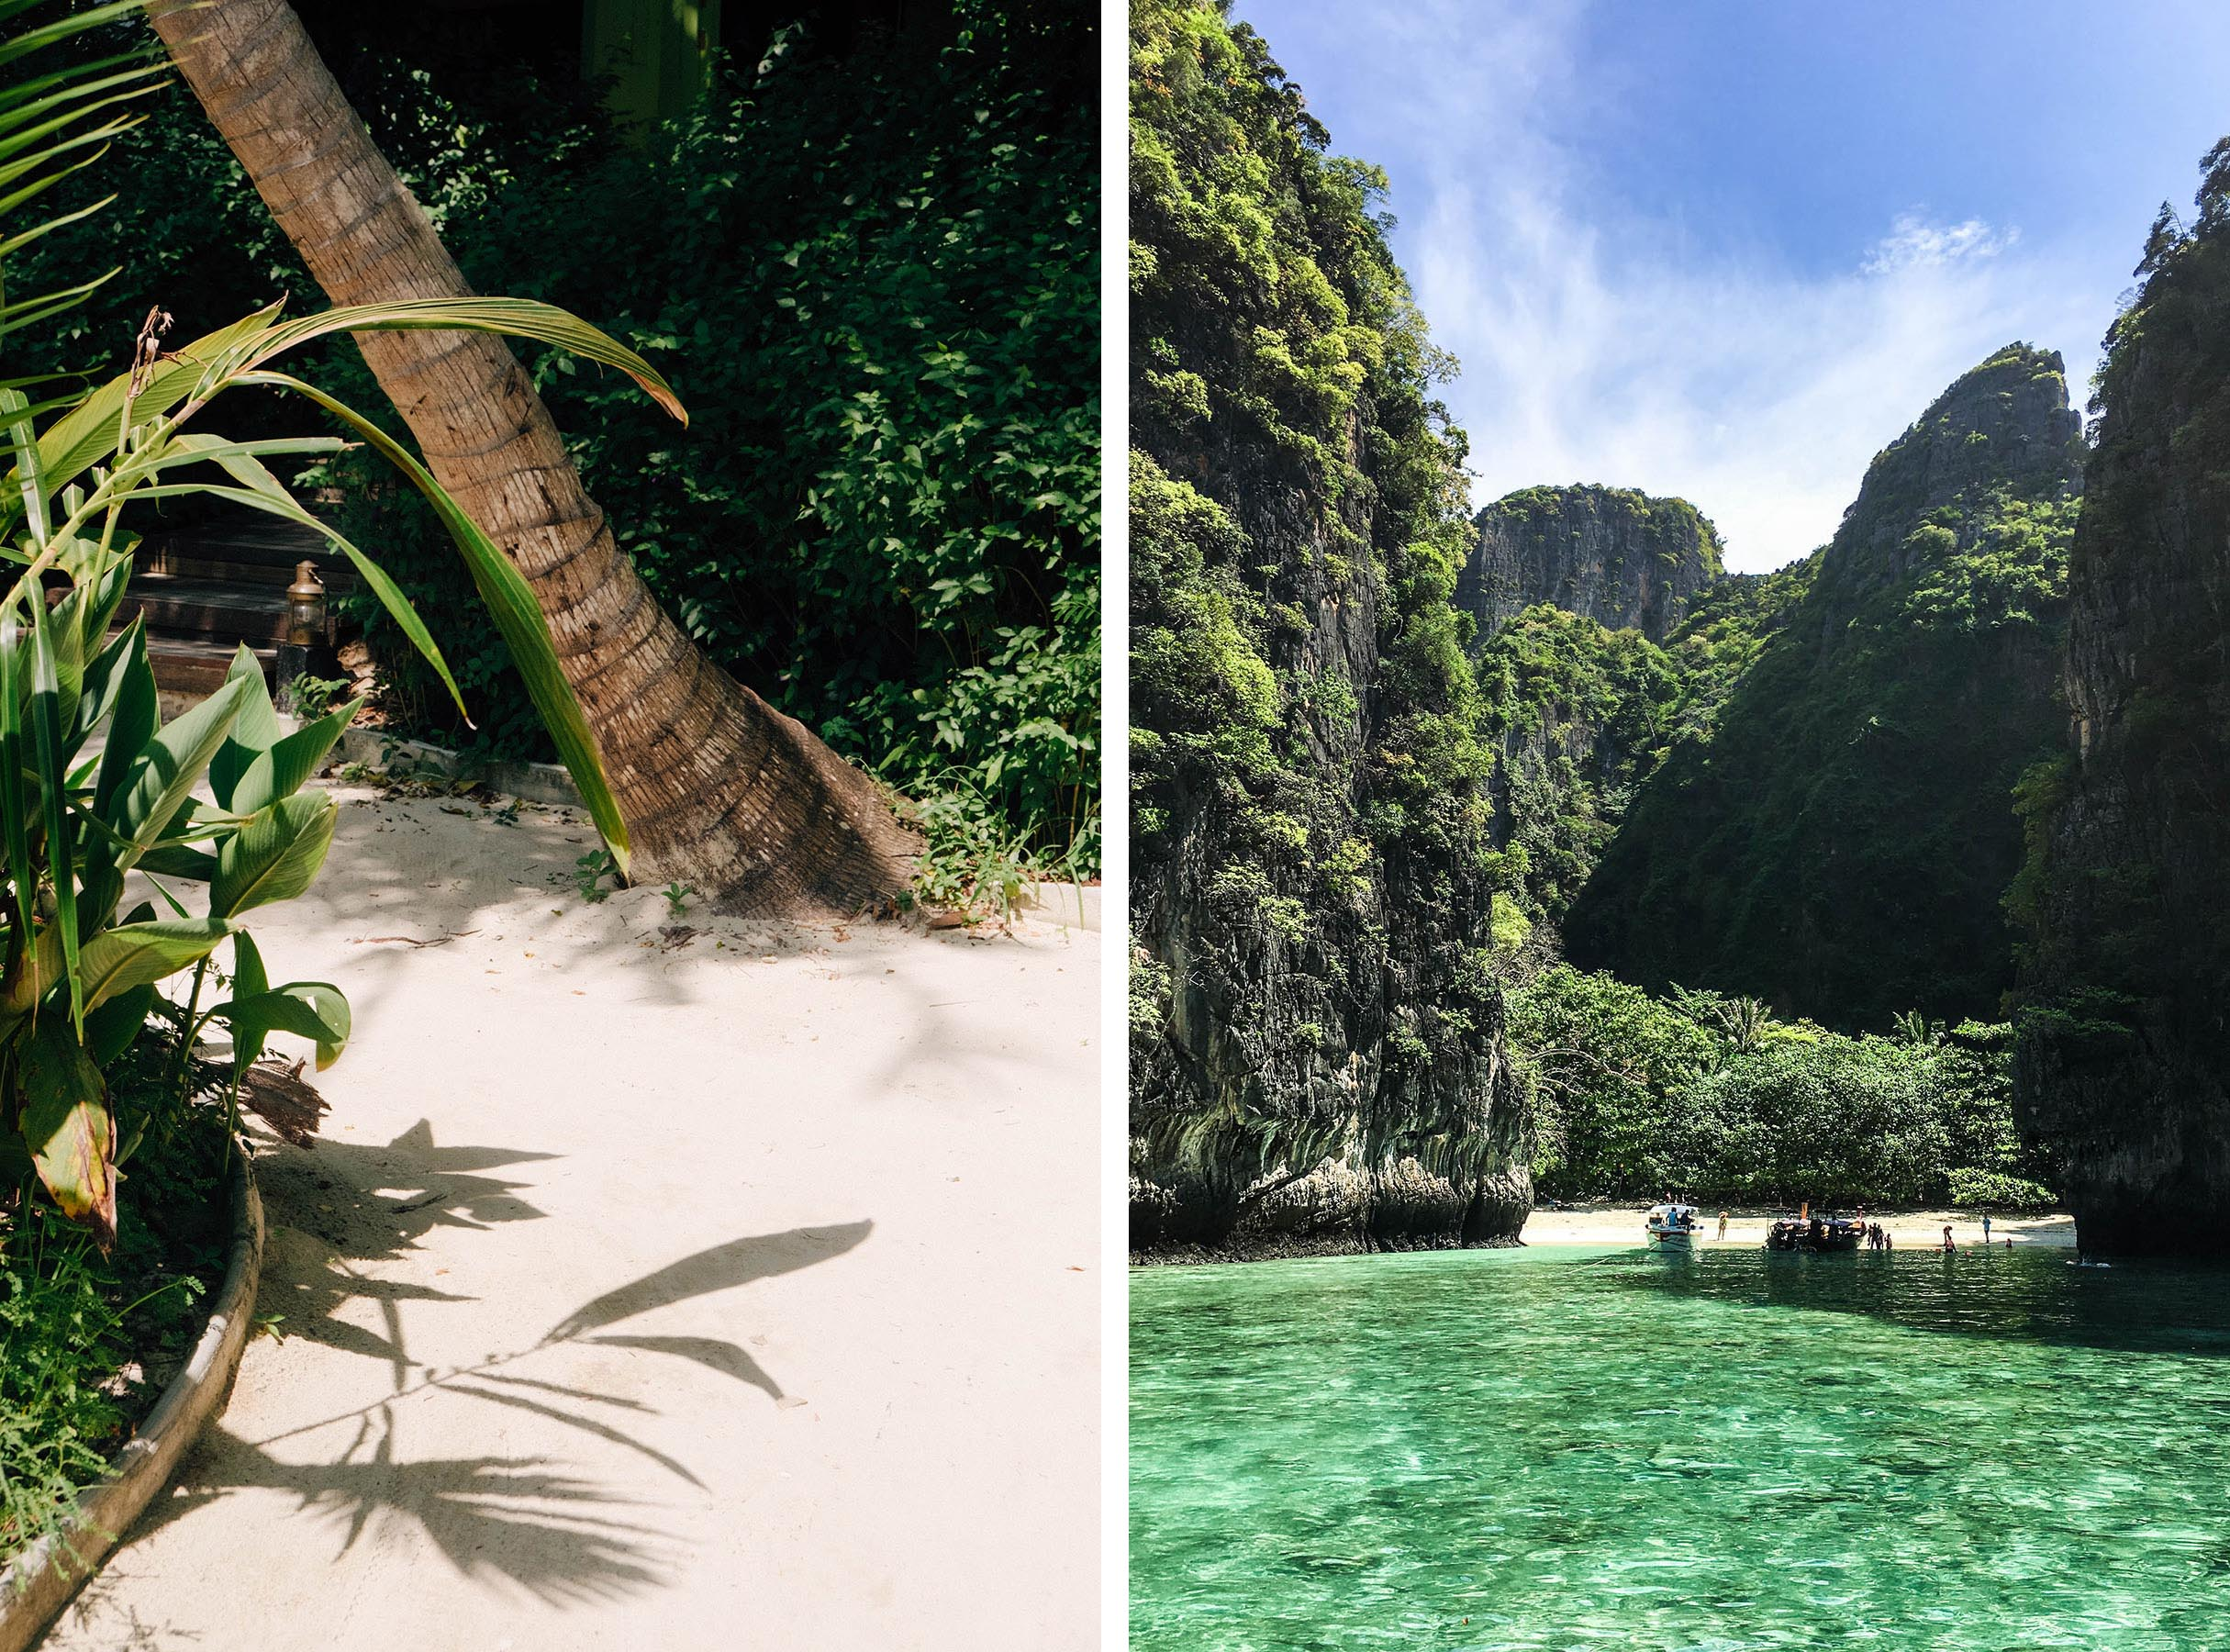 Looking for a true eco resort in Thailand? I found one on Koh Phi Phi! PADI divecenter, barefoot luxury & just a speedboat ride from Phuket.